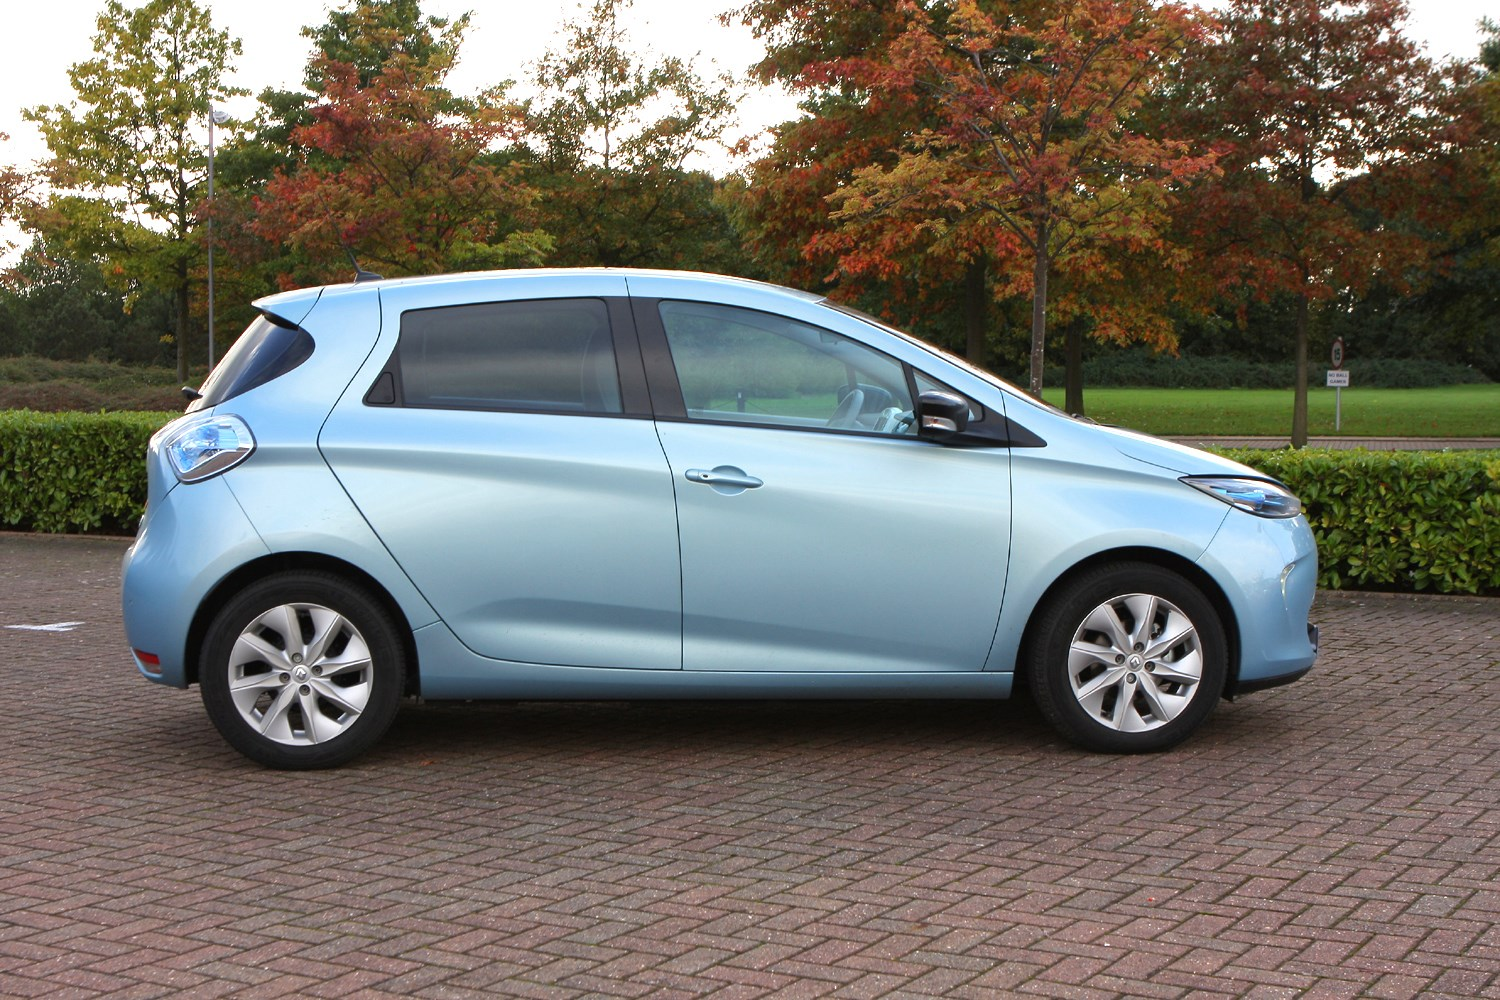 renault zoe hatchback review parkers. Black Bedroom Furniture Sets. Home Design Ideas